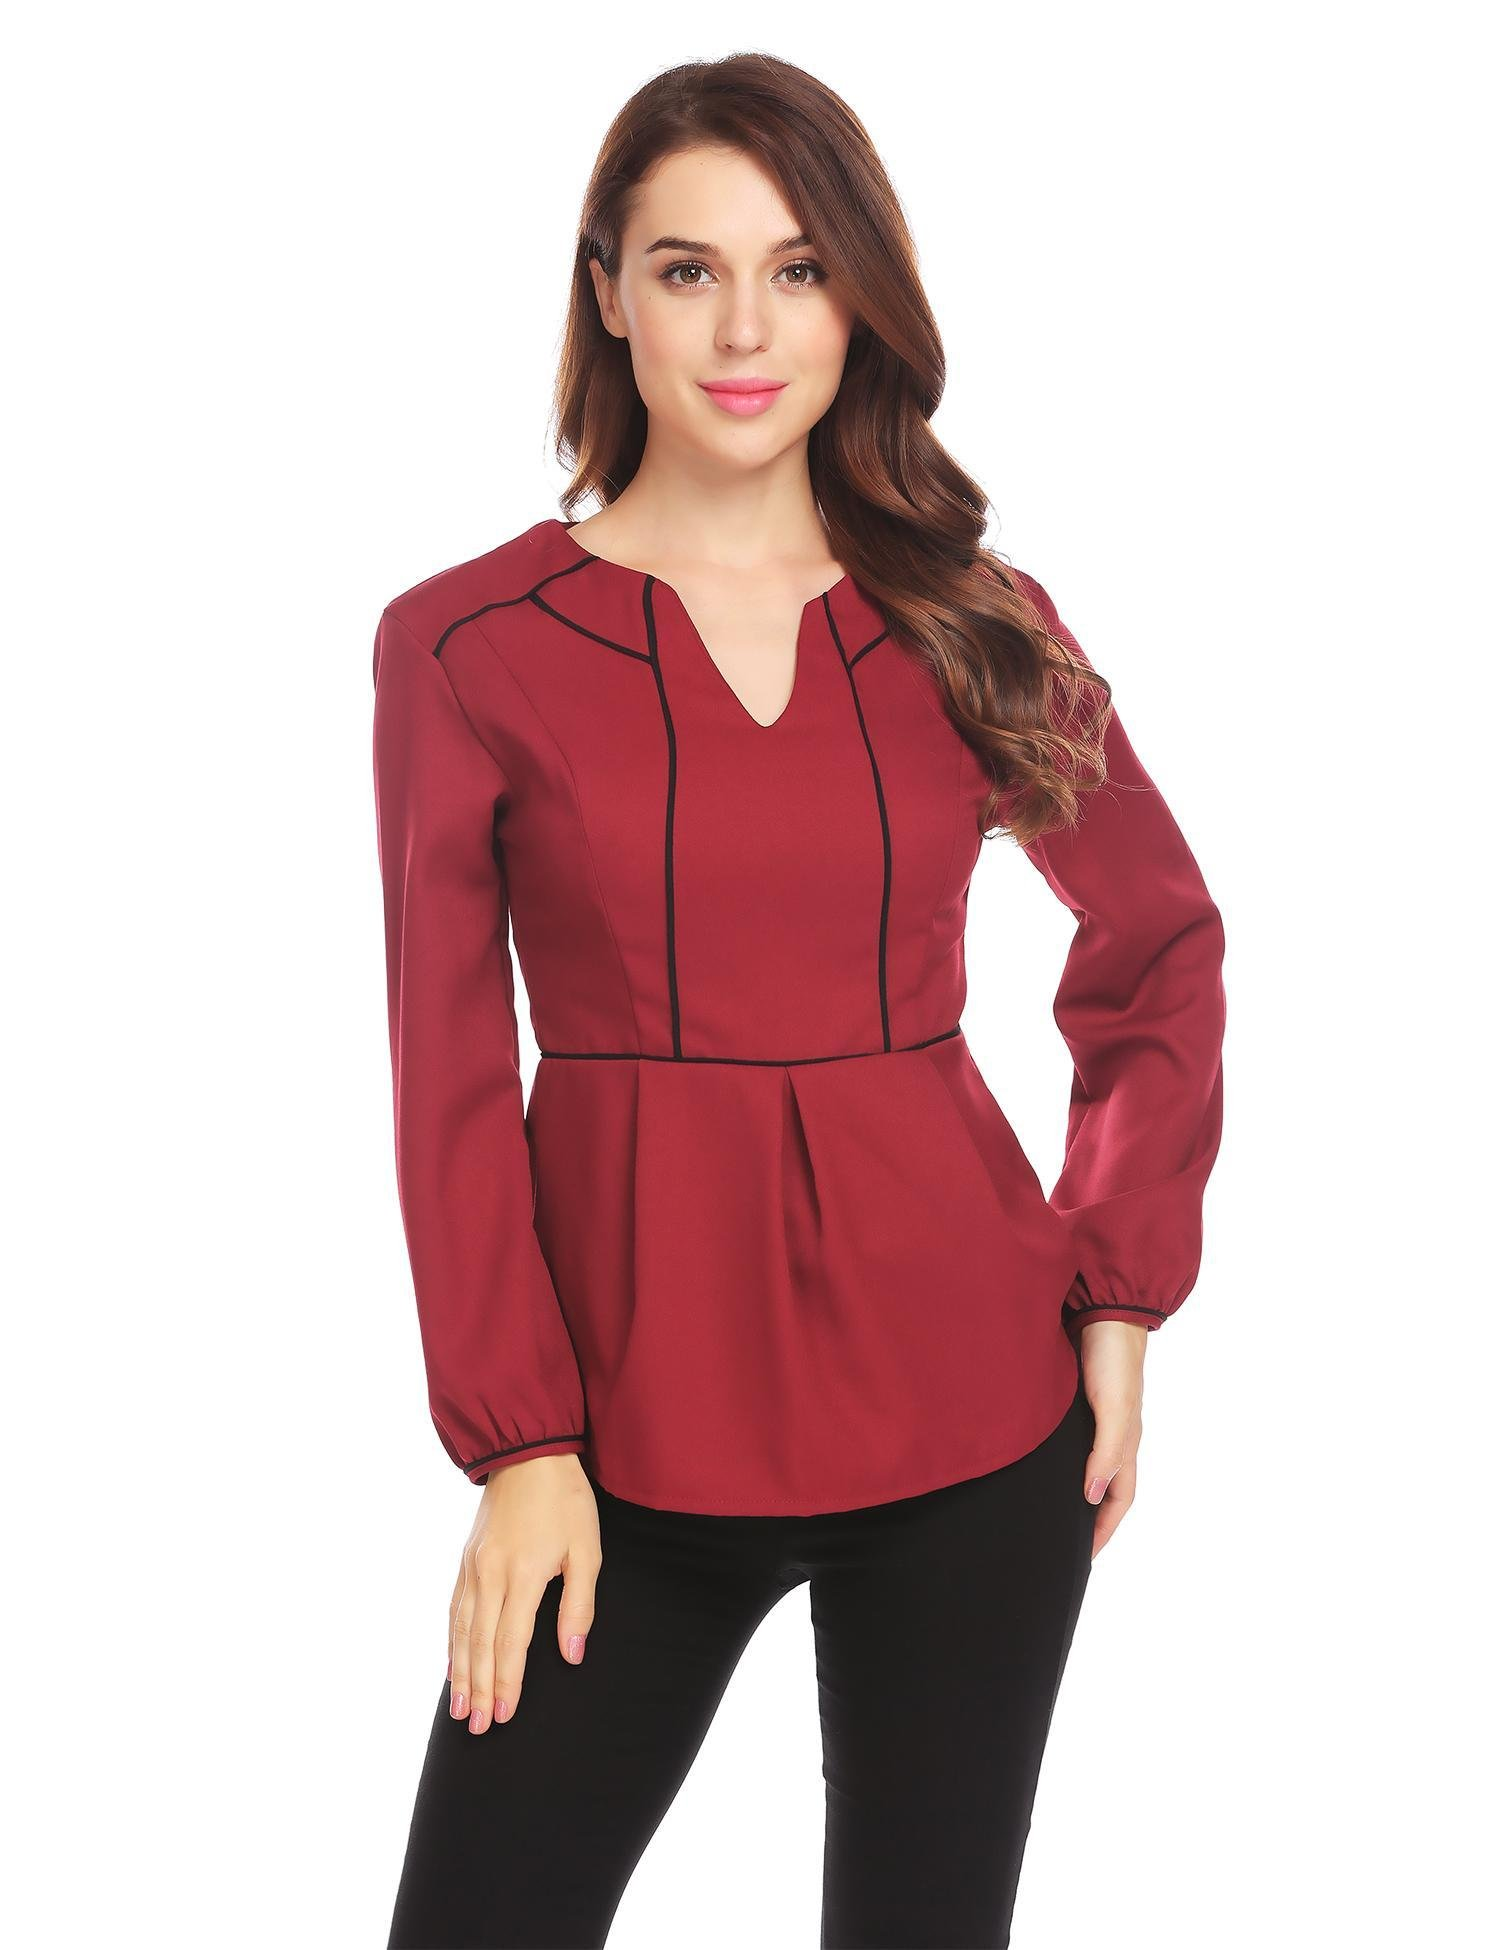 Bulges Women Notch Neck Tops Long Sleeve Patchwork Slim Fit Casual Business Peplum Blouse